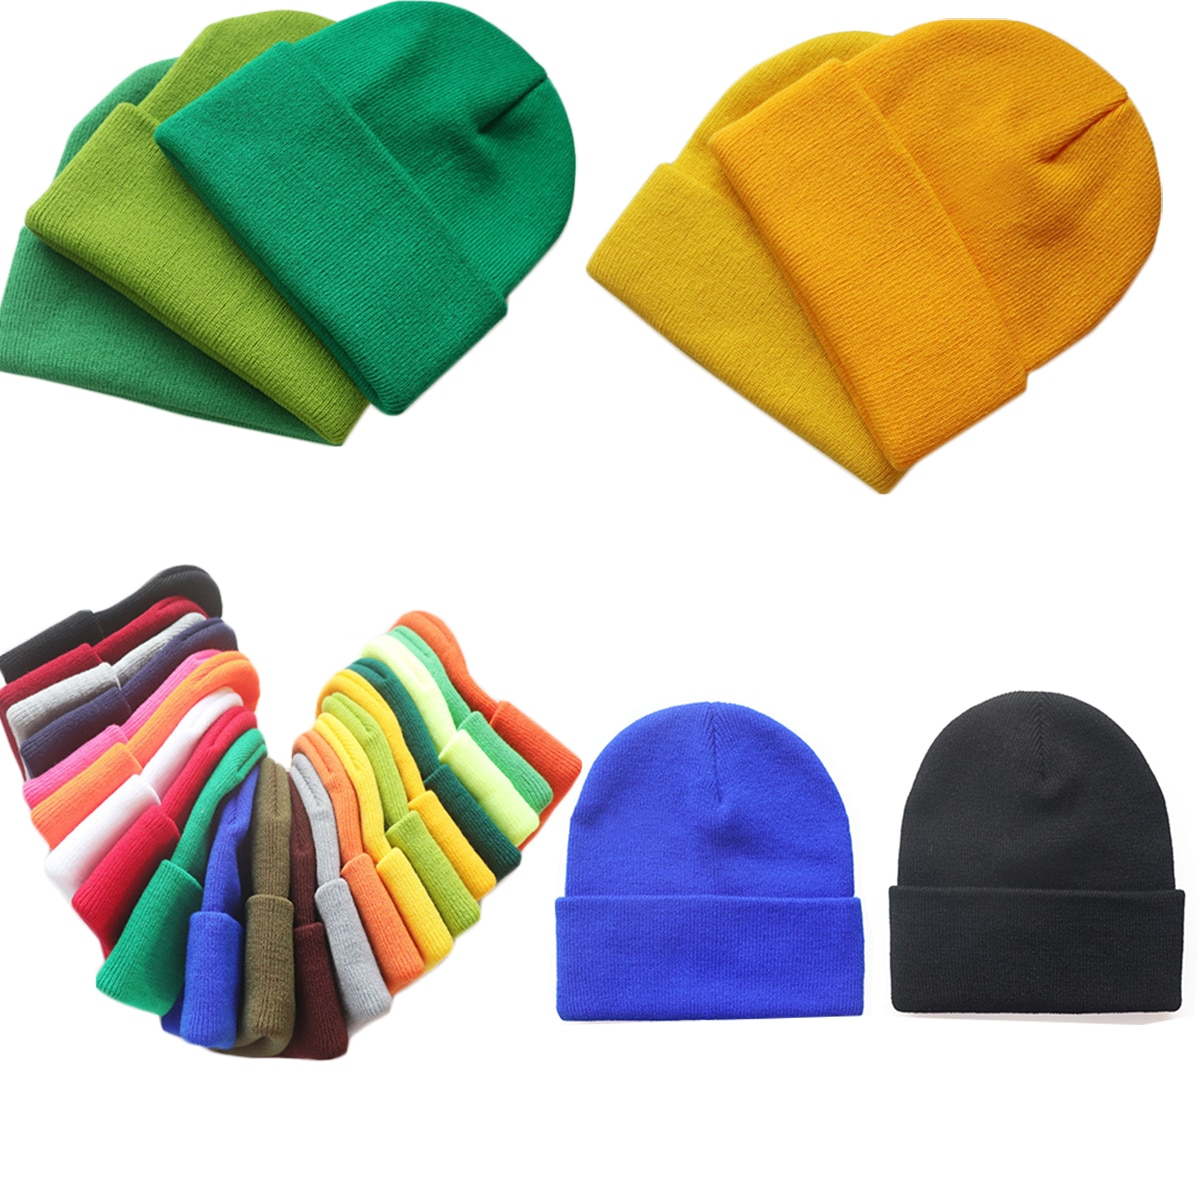 20colors solid color knitted hat woolen hat brimless cap curled cap cold hat customizable logo woman man beanies high-quality